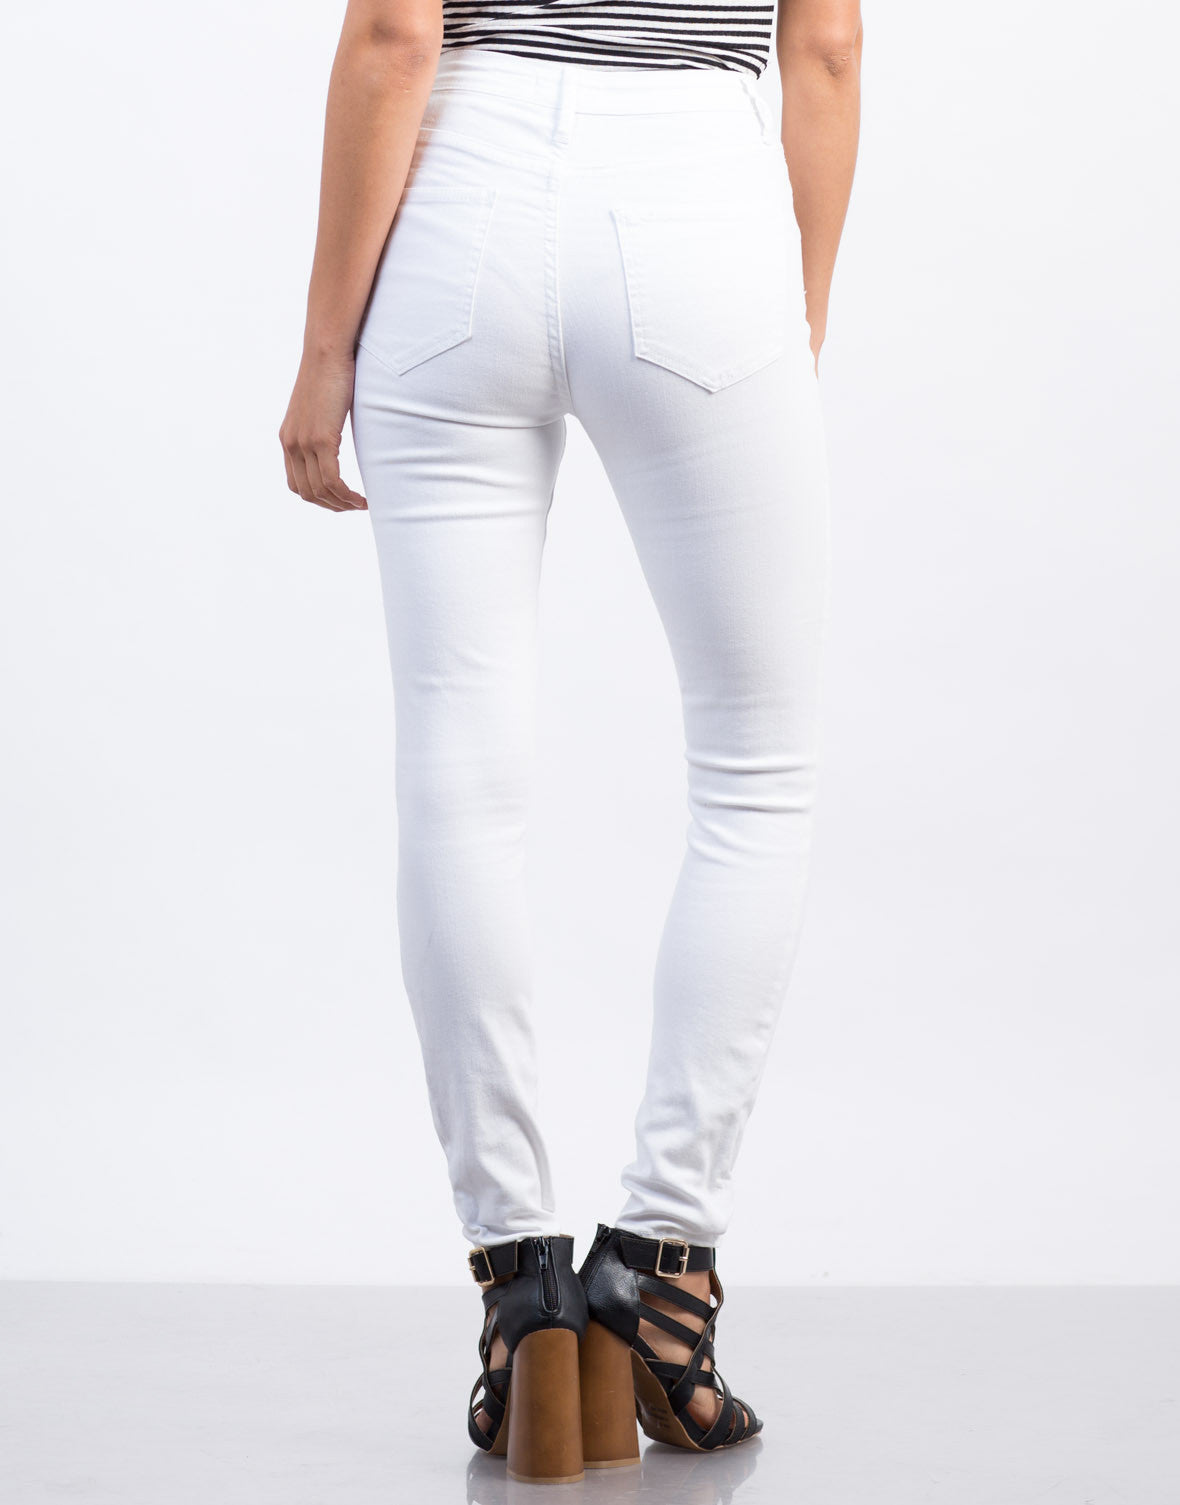 Back View of Skinny Sailor Jeans